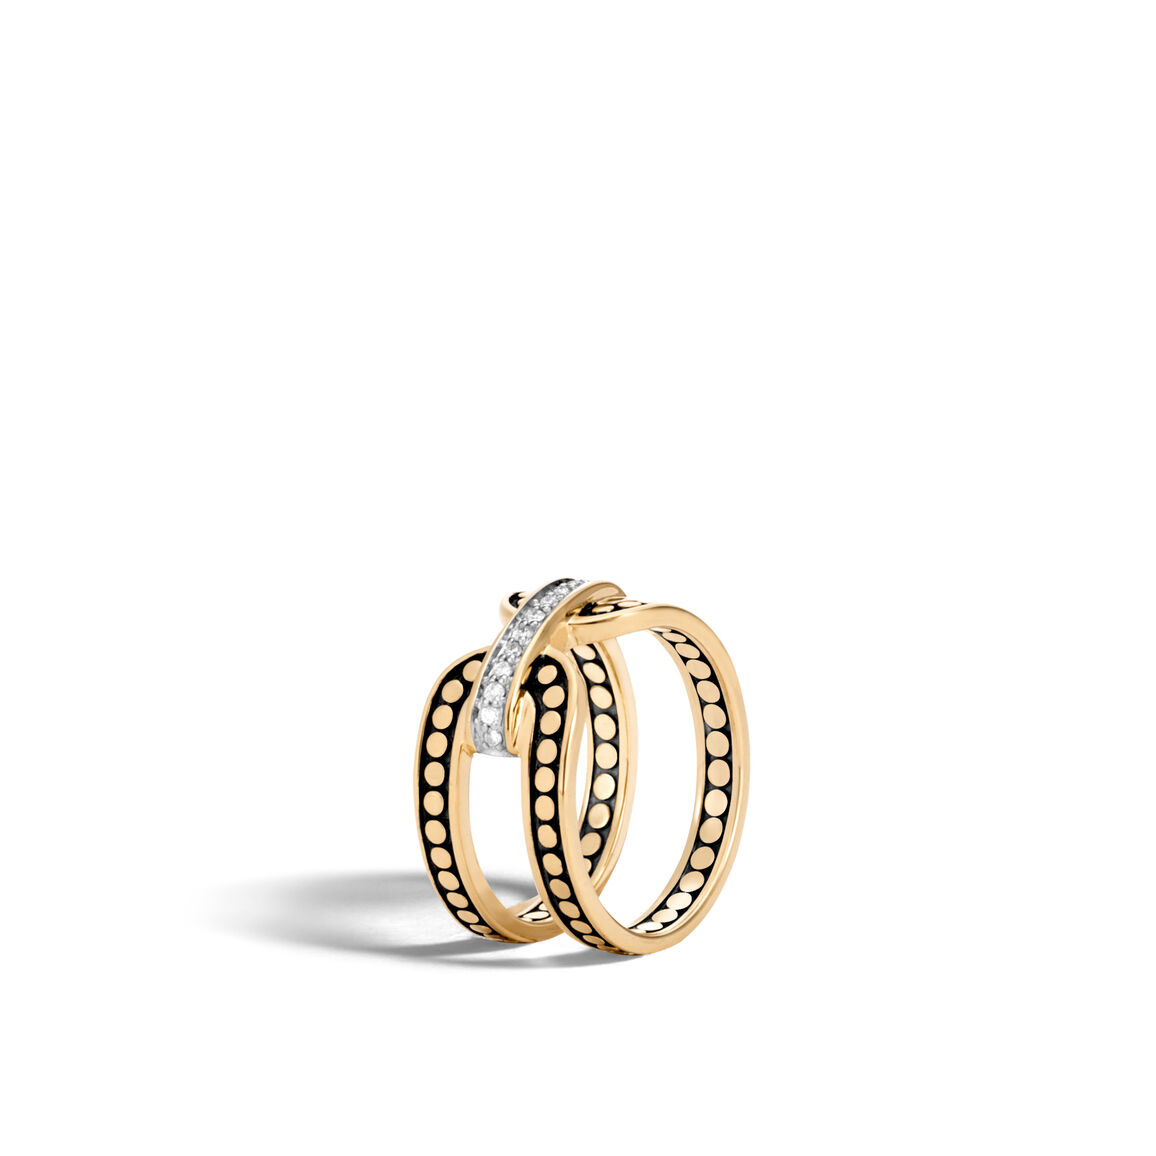 Dot 10.5MM Band Ring in 18K Gold with Diamonds